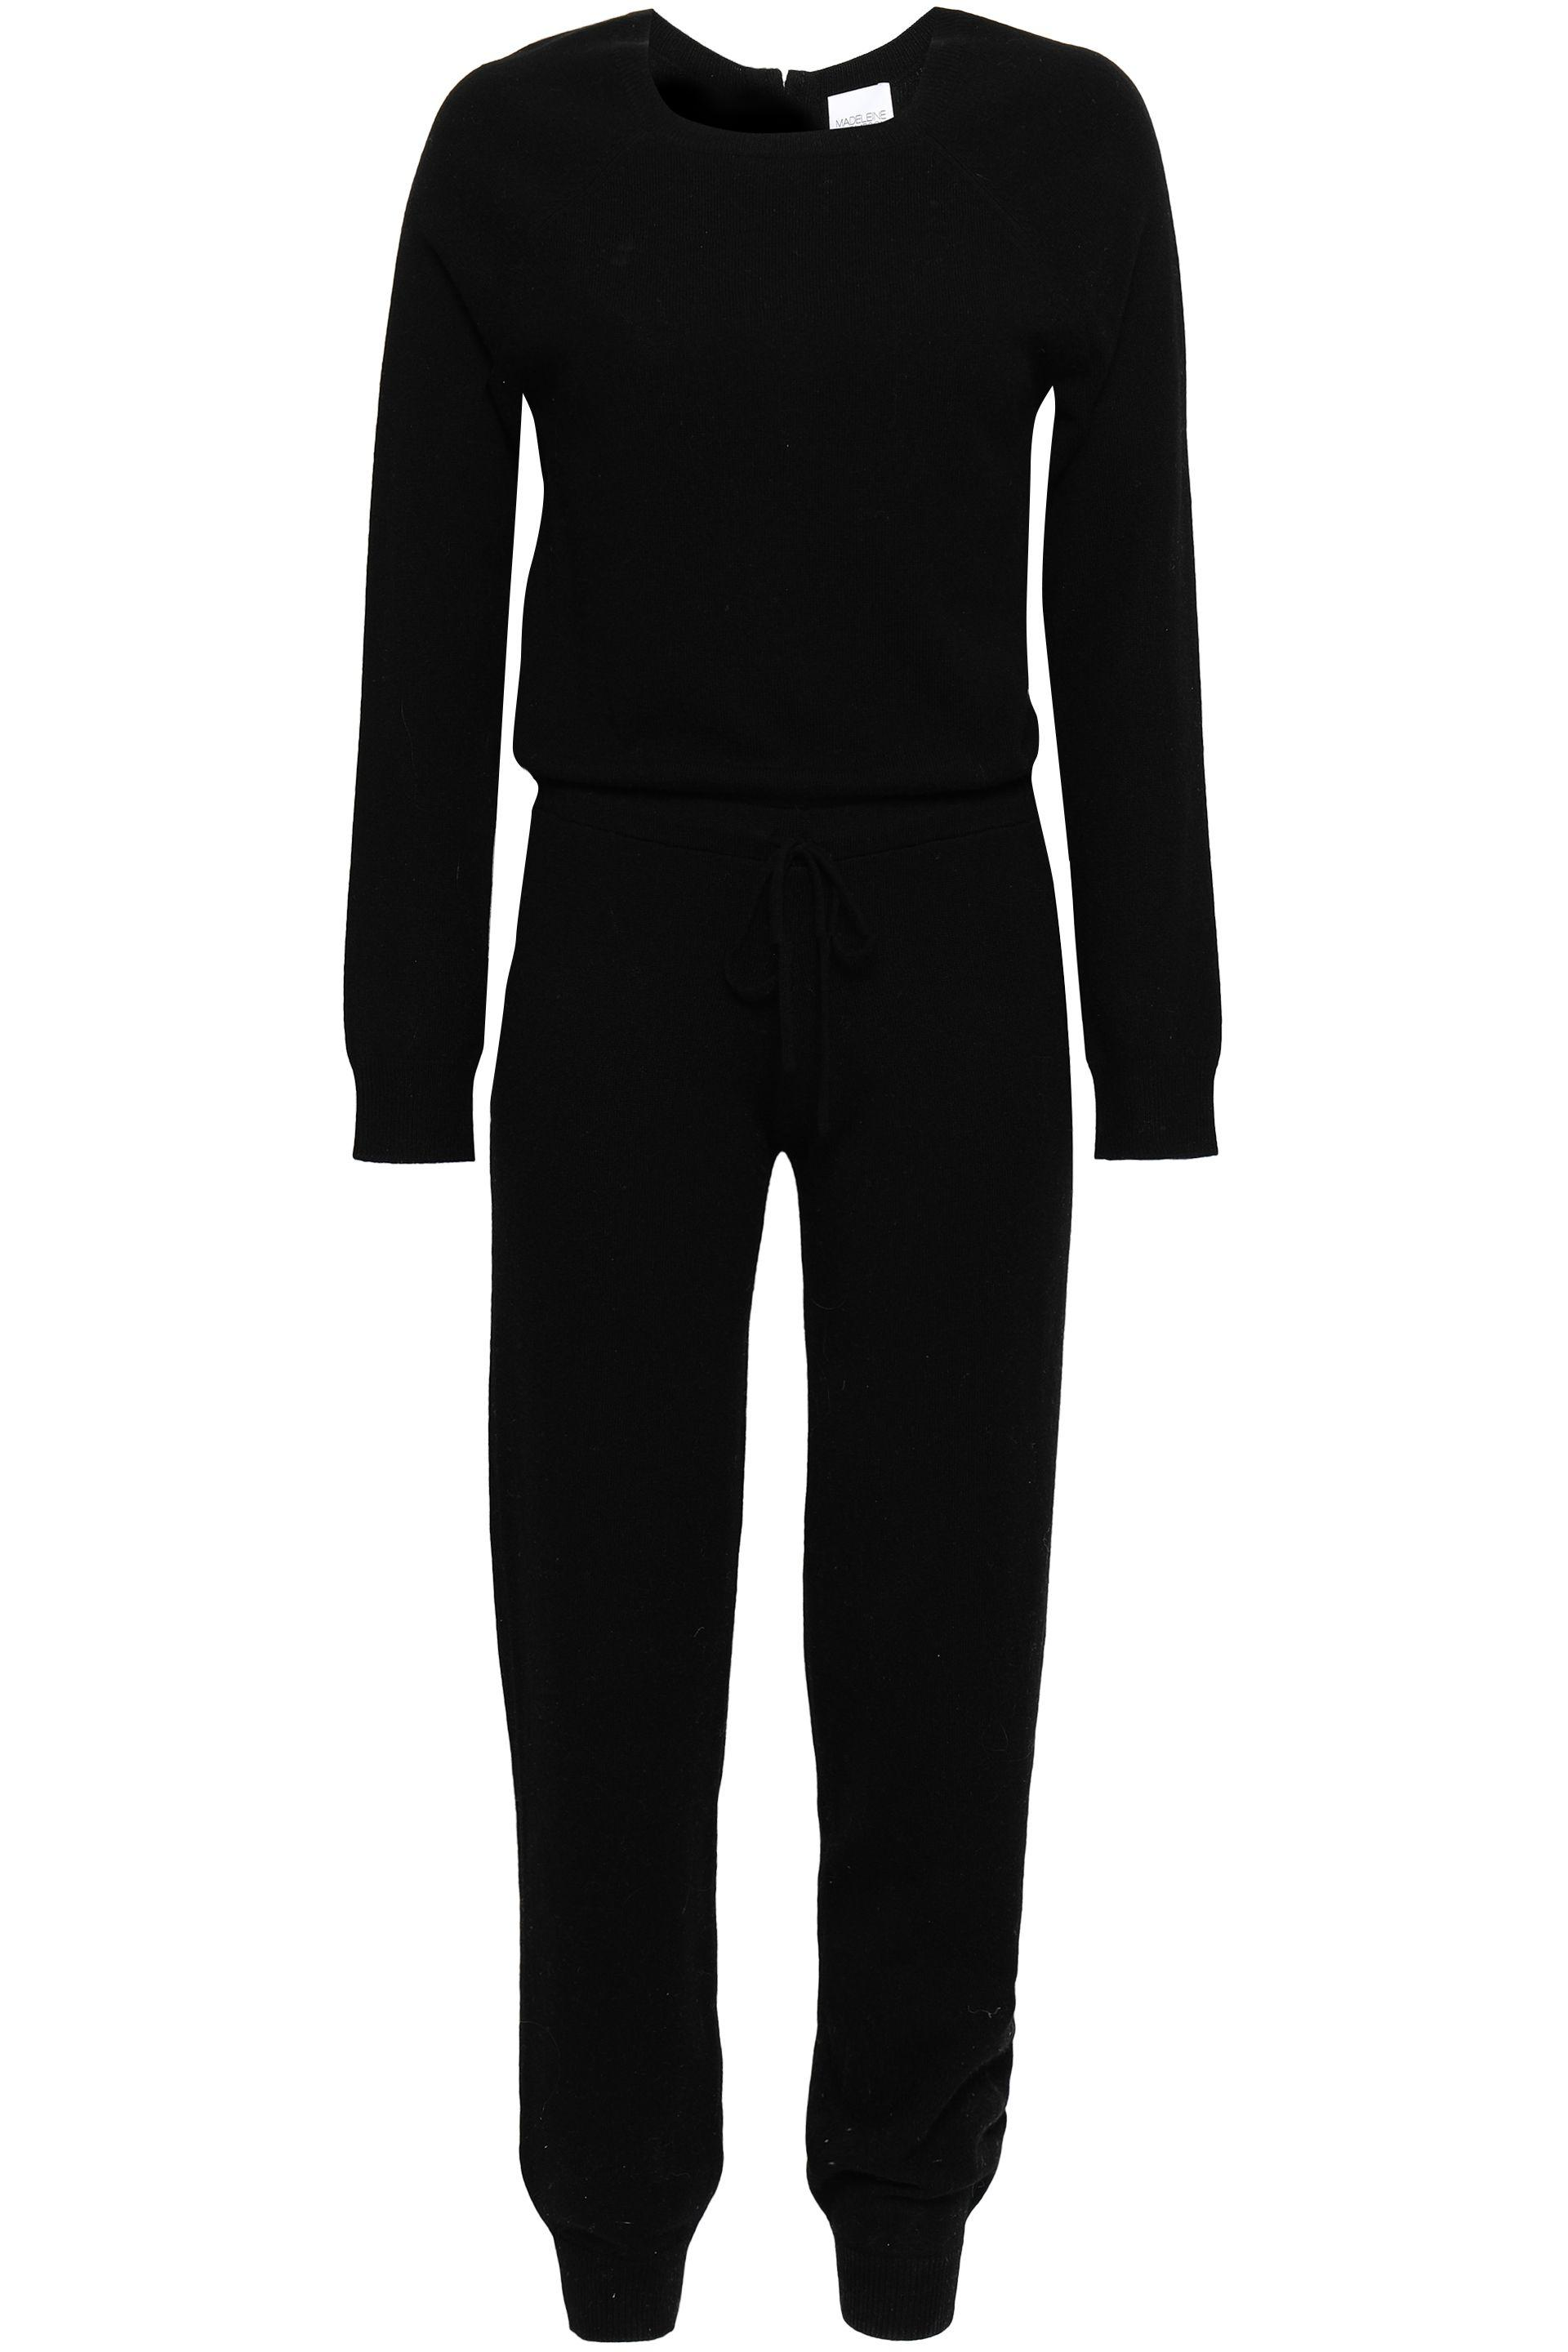 9f5c49832283 Madeleine Thompson. Women s Woman Wool And Cashmere-blend Jumpsuit Black